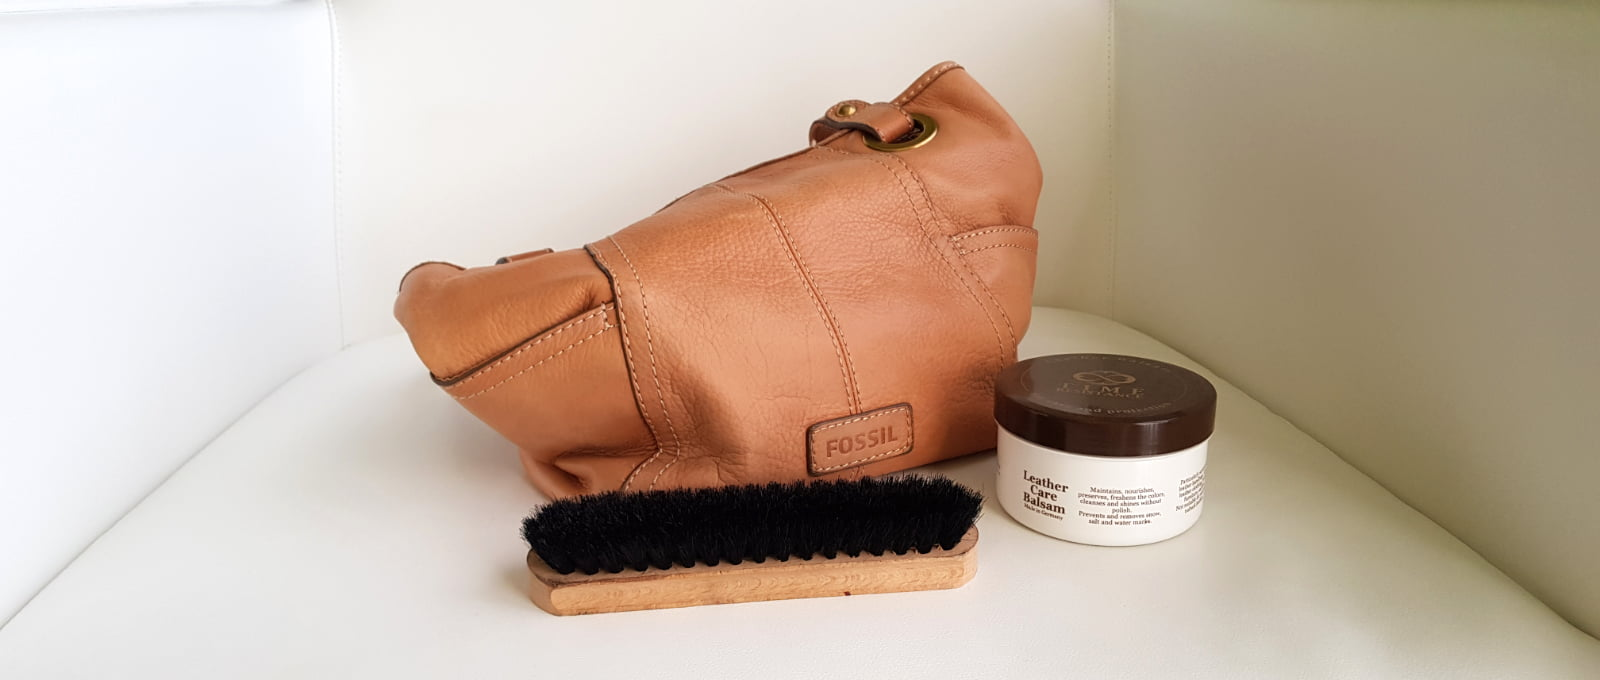 leather handbag with cleaning accessories